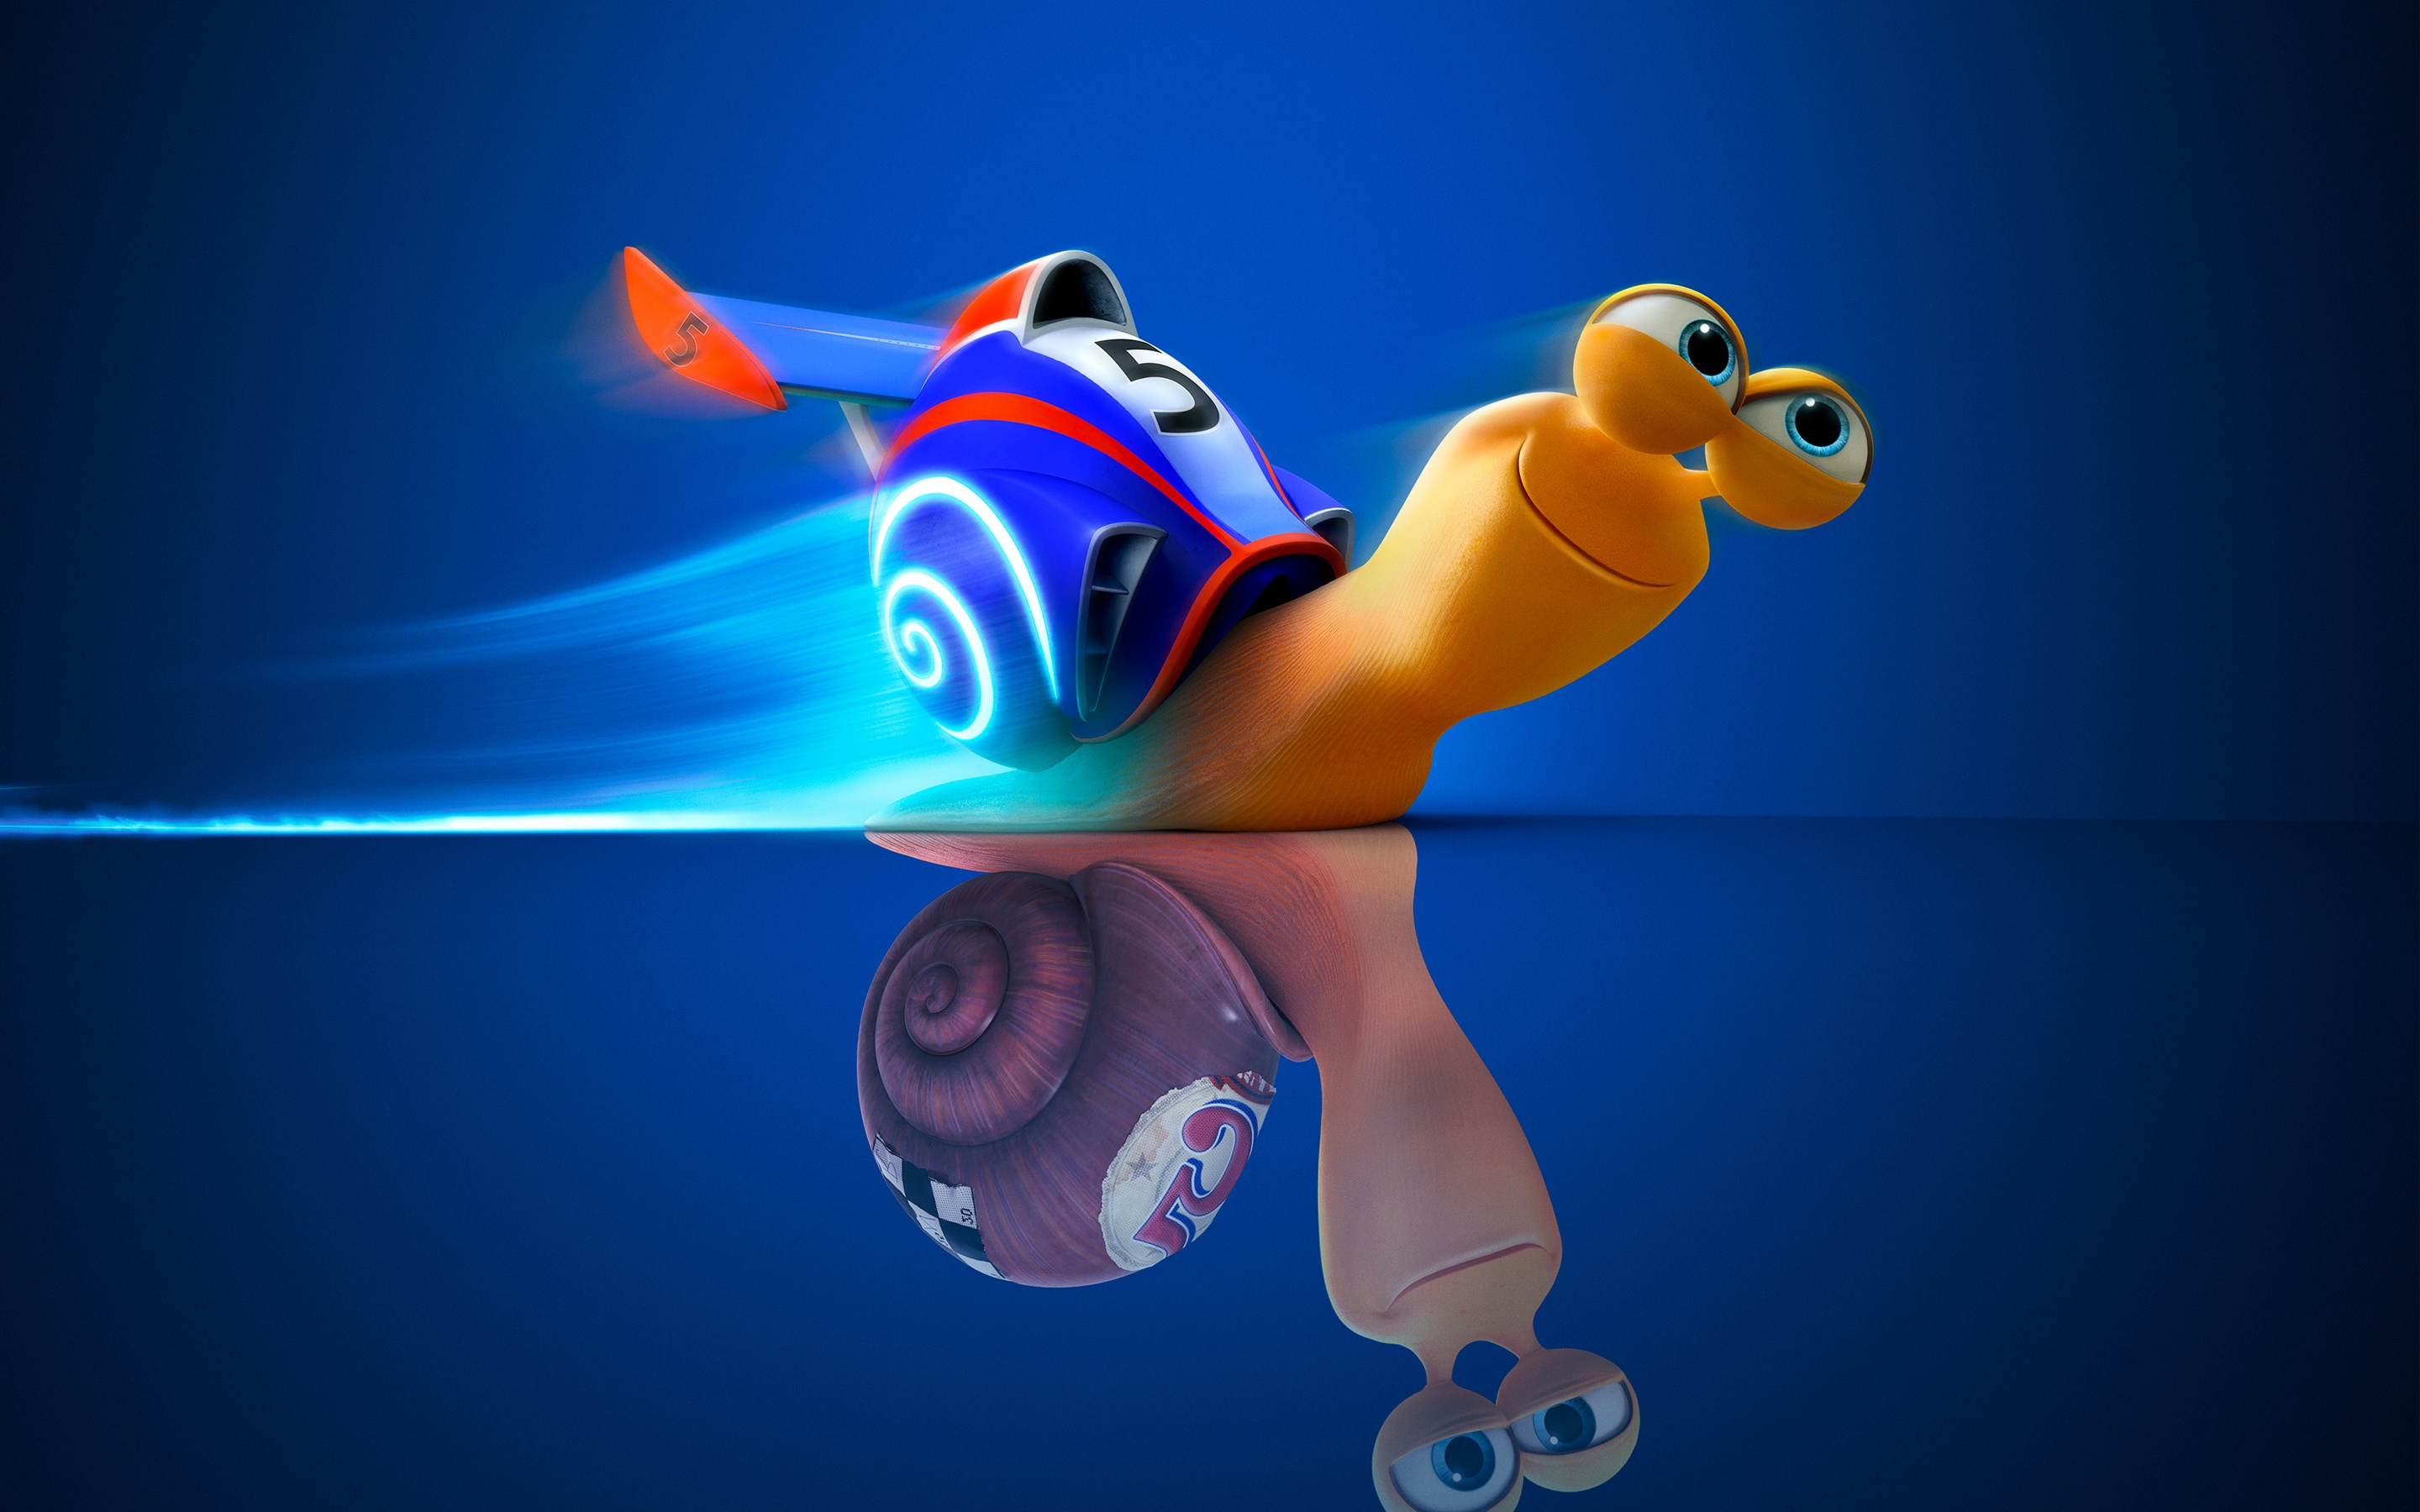 Turbo wallpapers in jpg format for free download 28801800 voltagebd Images